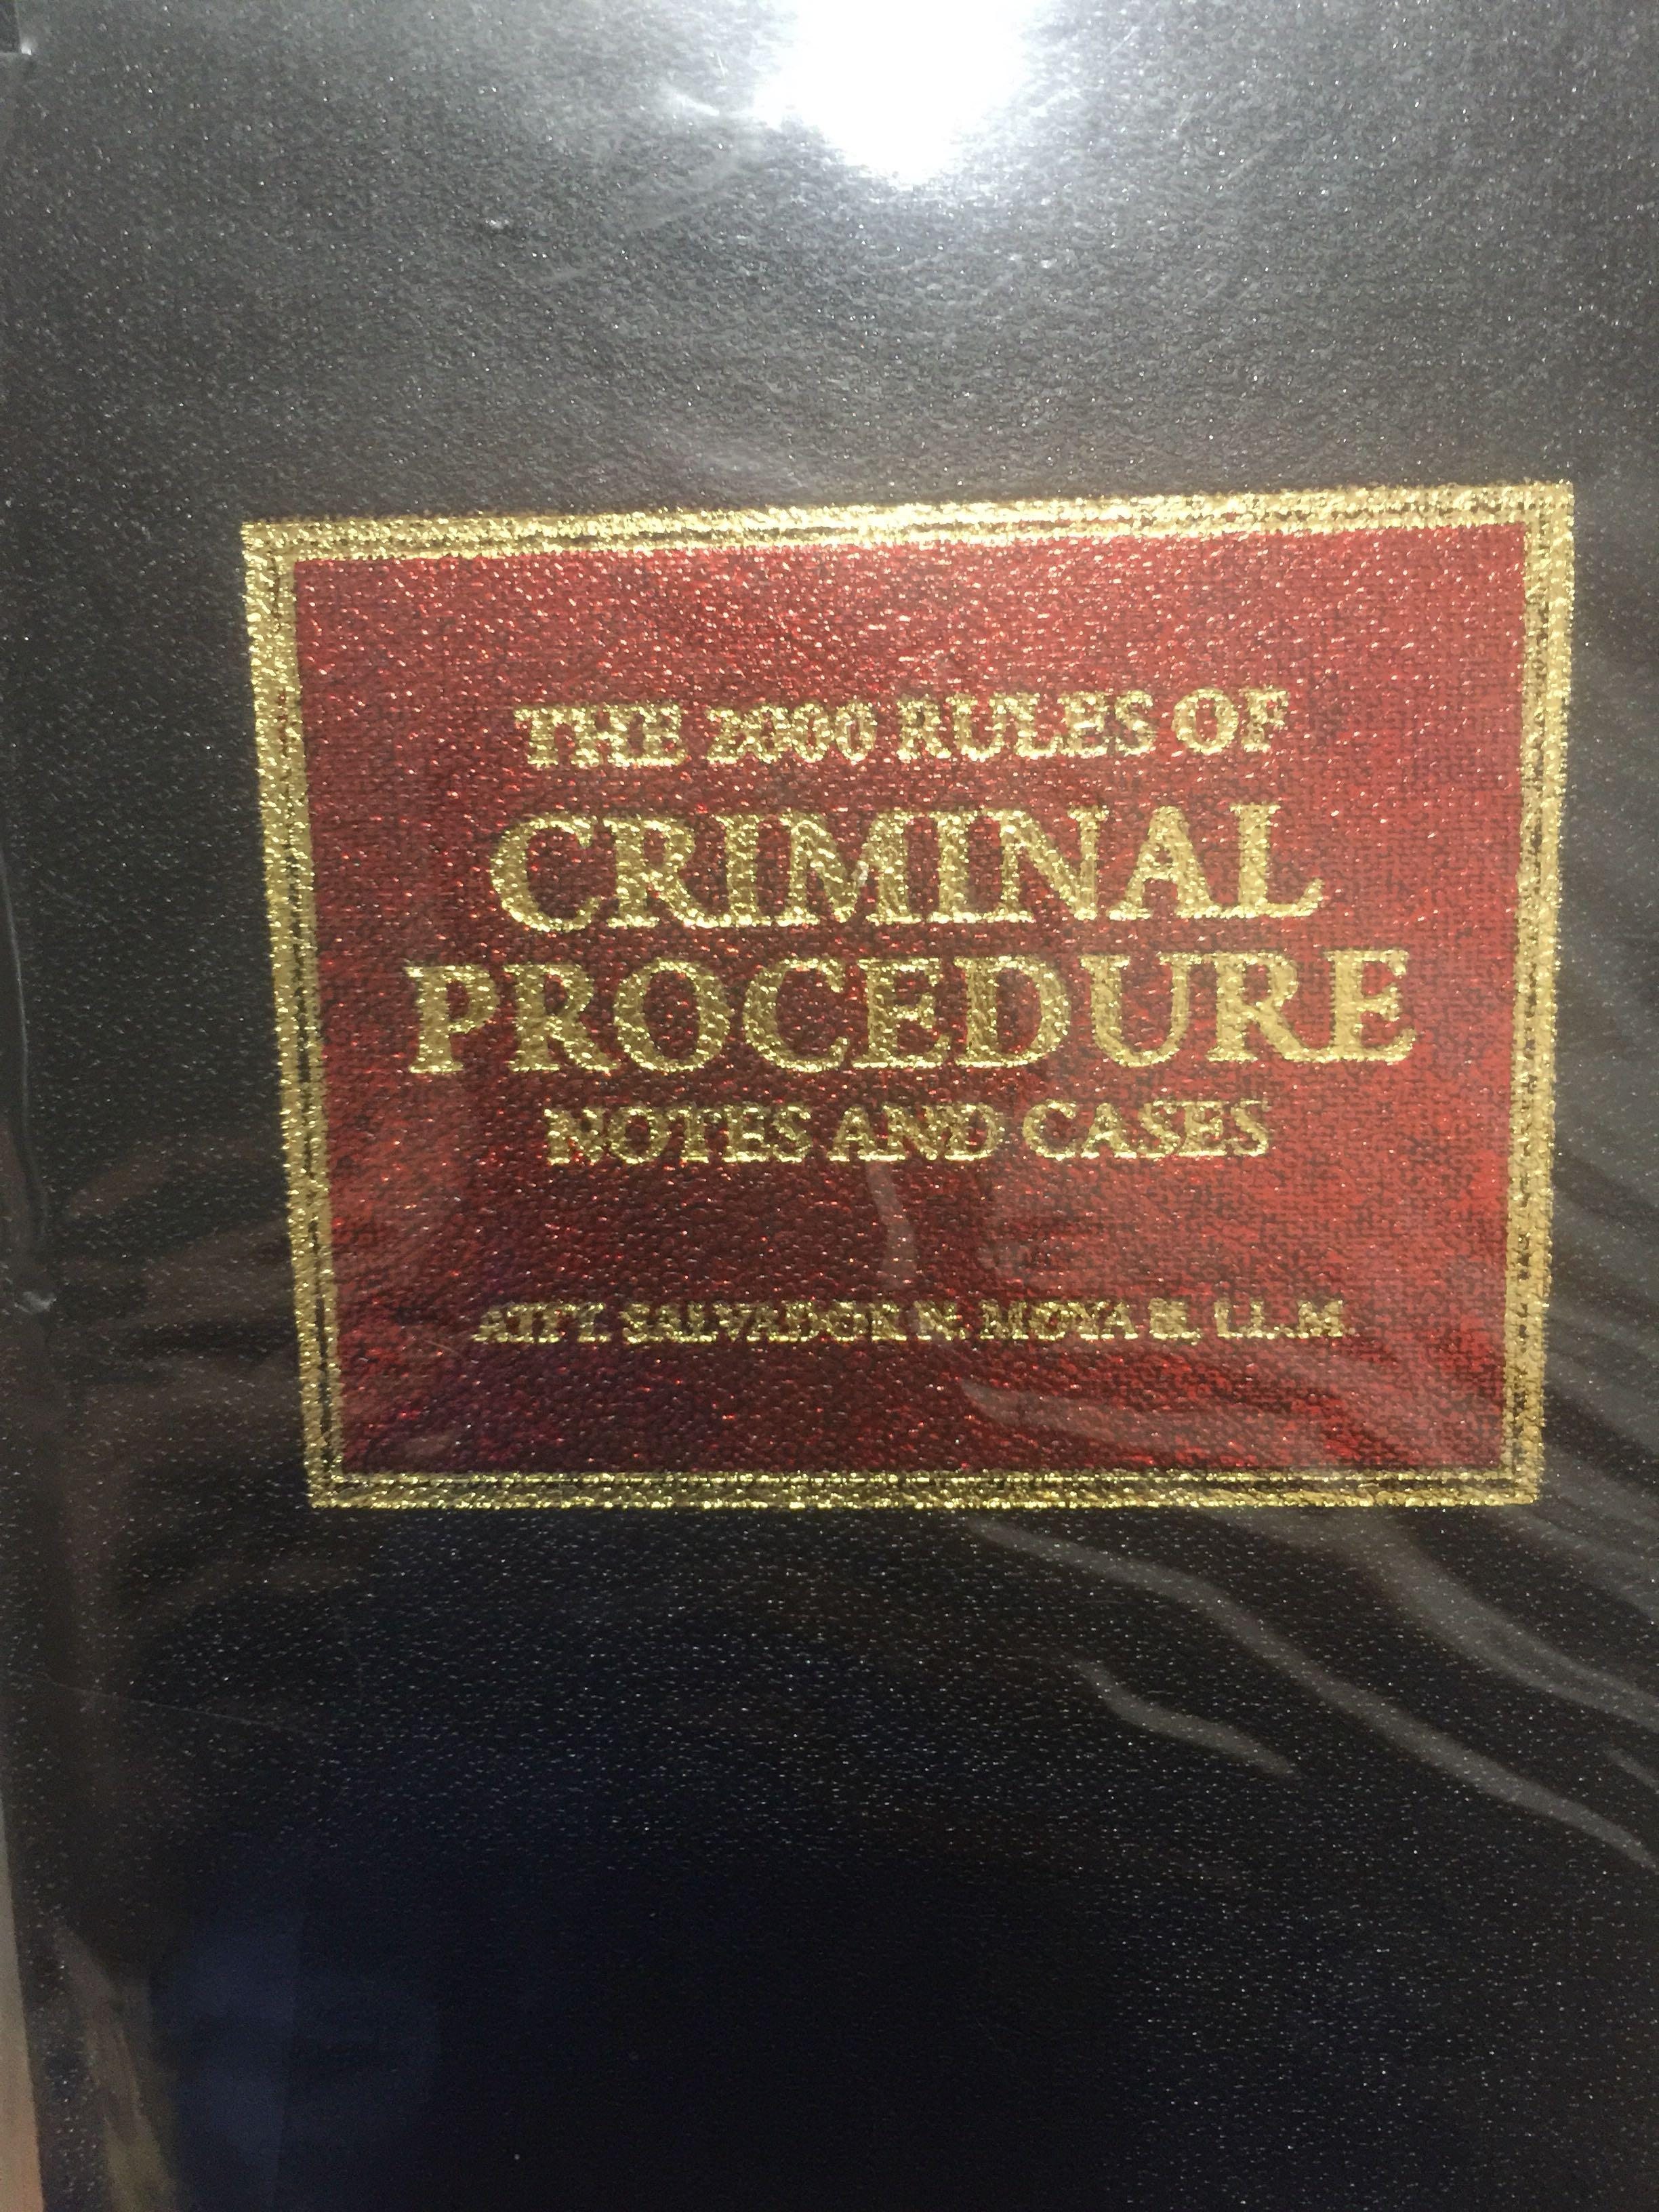 The 2000 rules of criminal procedure notes and cases by: atty.  Salvador Moya 2017 edition